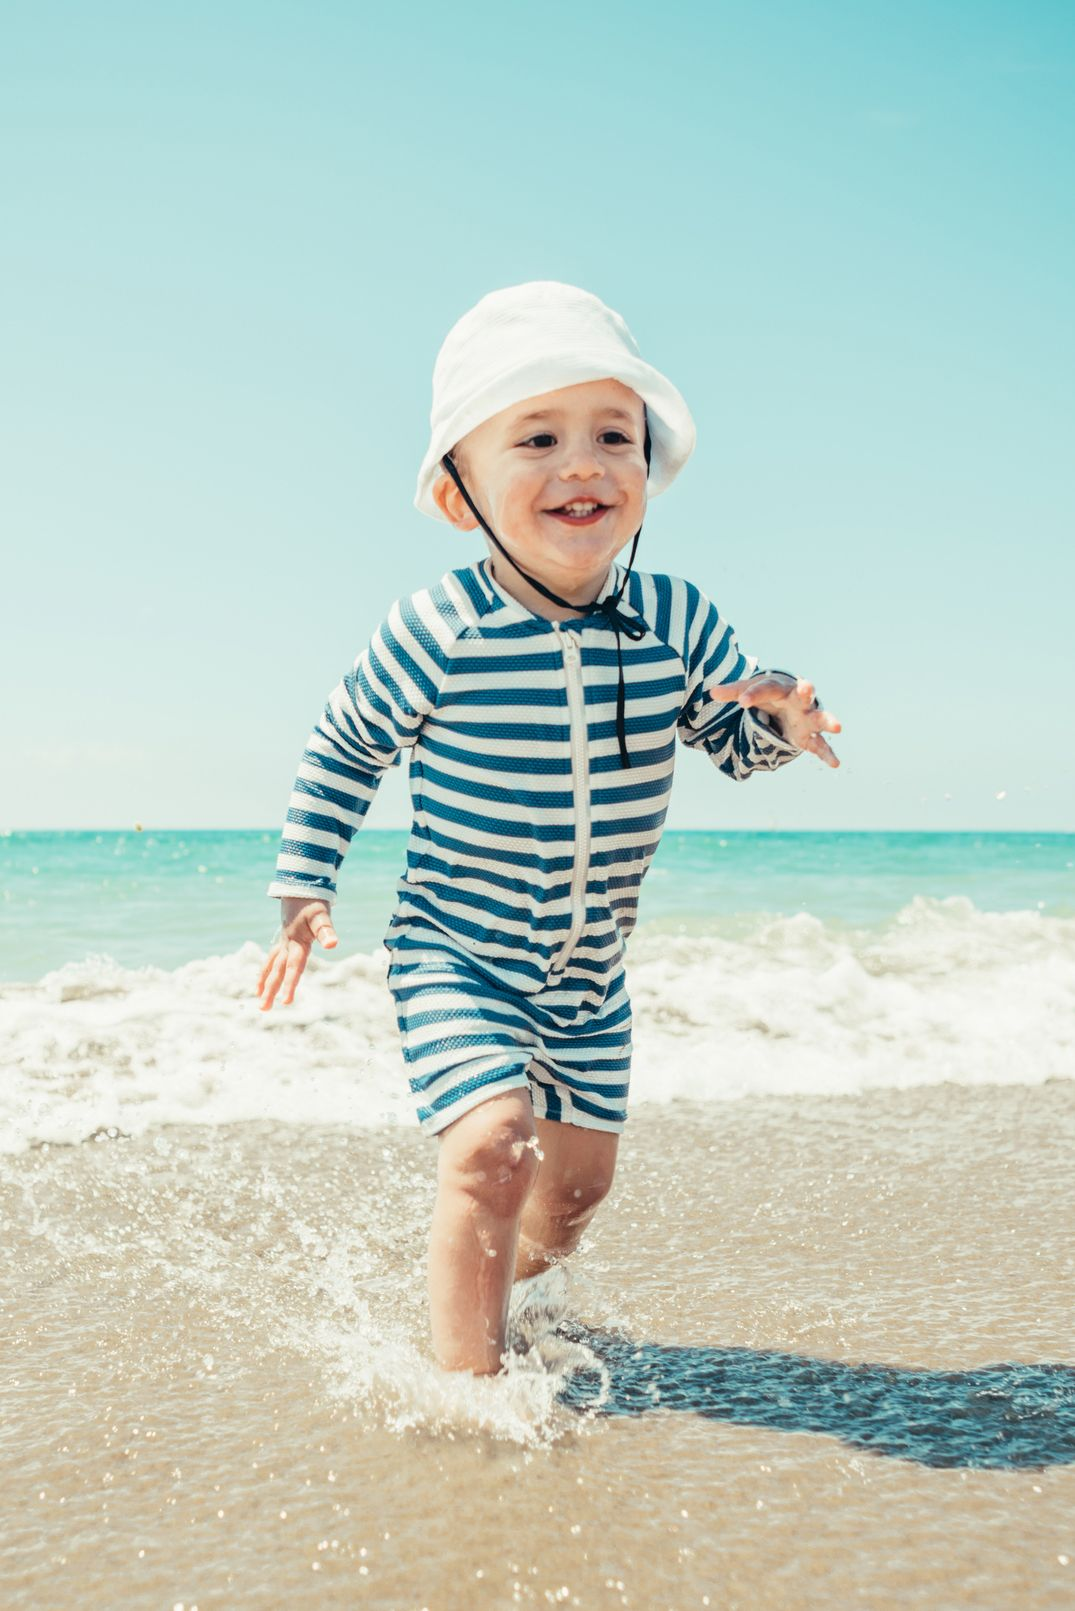 20 Cool Boy Names Cool Baby Boy Names